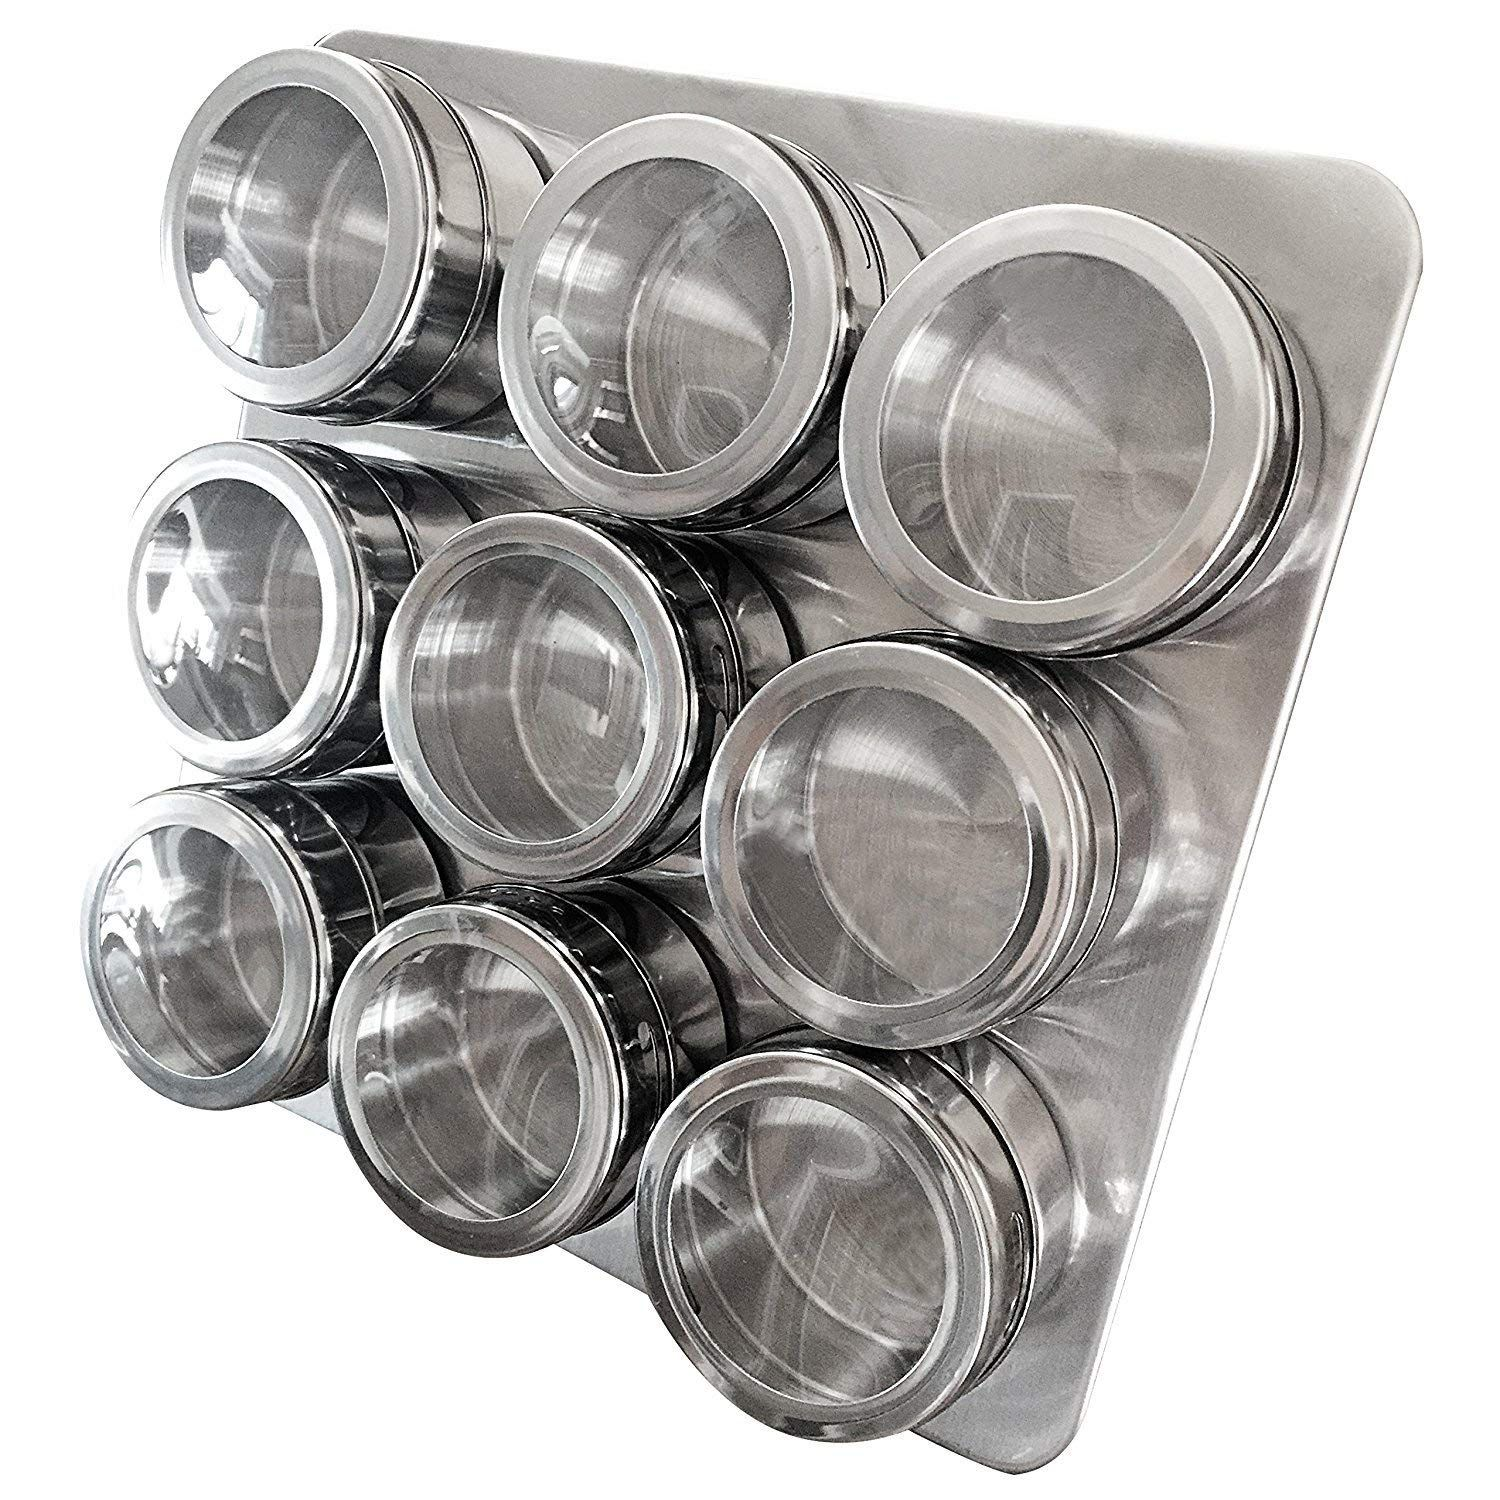 Stand and Wall Mount by Uncluttered Designs Intergalactic Spice Rack Set With Magnetic Jars 9 Tin